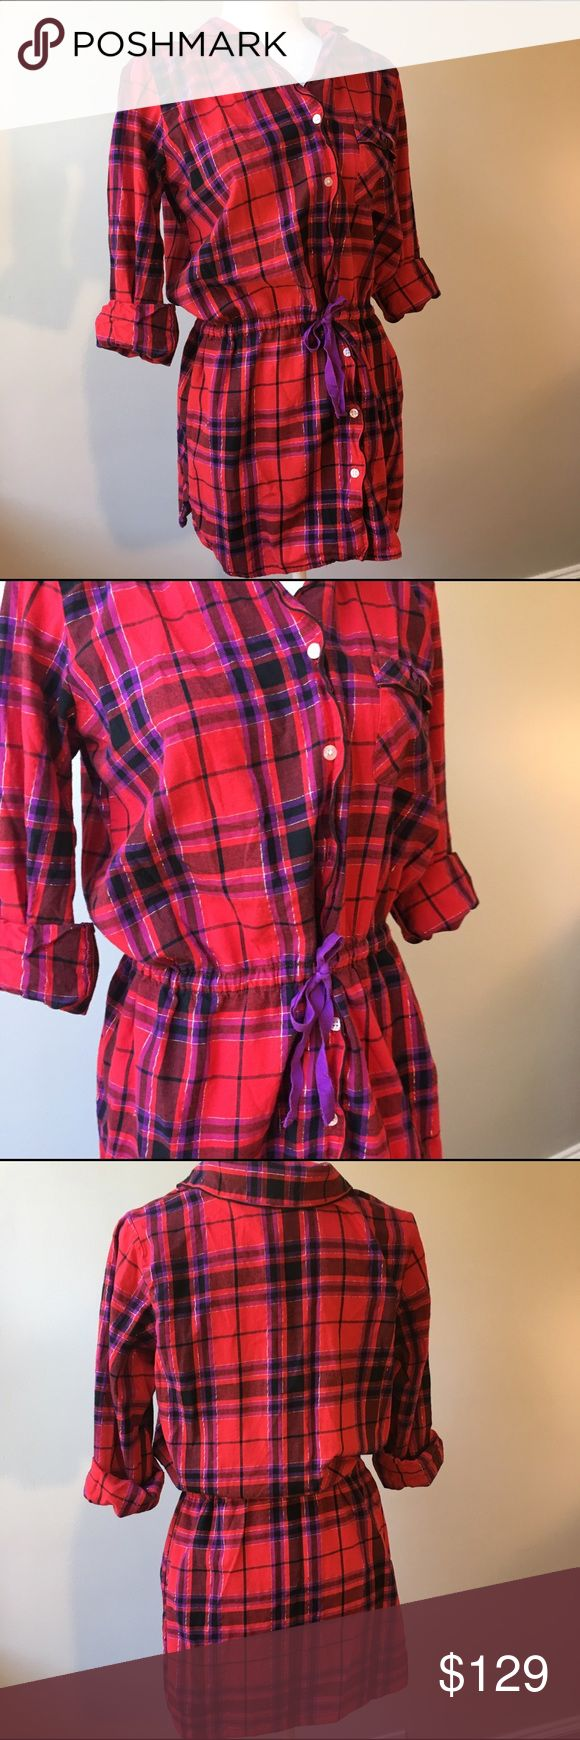 Victoria's Secret Red & Purple Plaid Pajama Robe EUC, long sleeve front button pajama robe in red and purple plaid print. Silver metallic threading throughout. Victoria's Secret print on each button. Cinched waist ties tied by a purple belt (belt is slightly worn). Small petite but can also fit small regular. Victoria's Secret Intimates & Sleepwear Robes